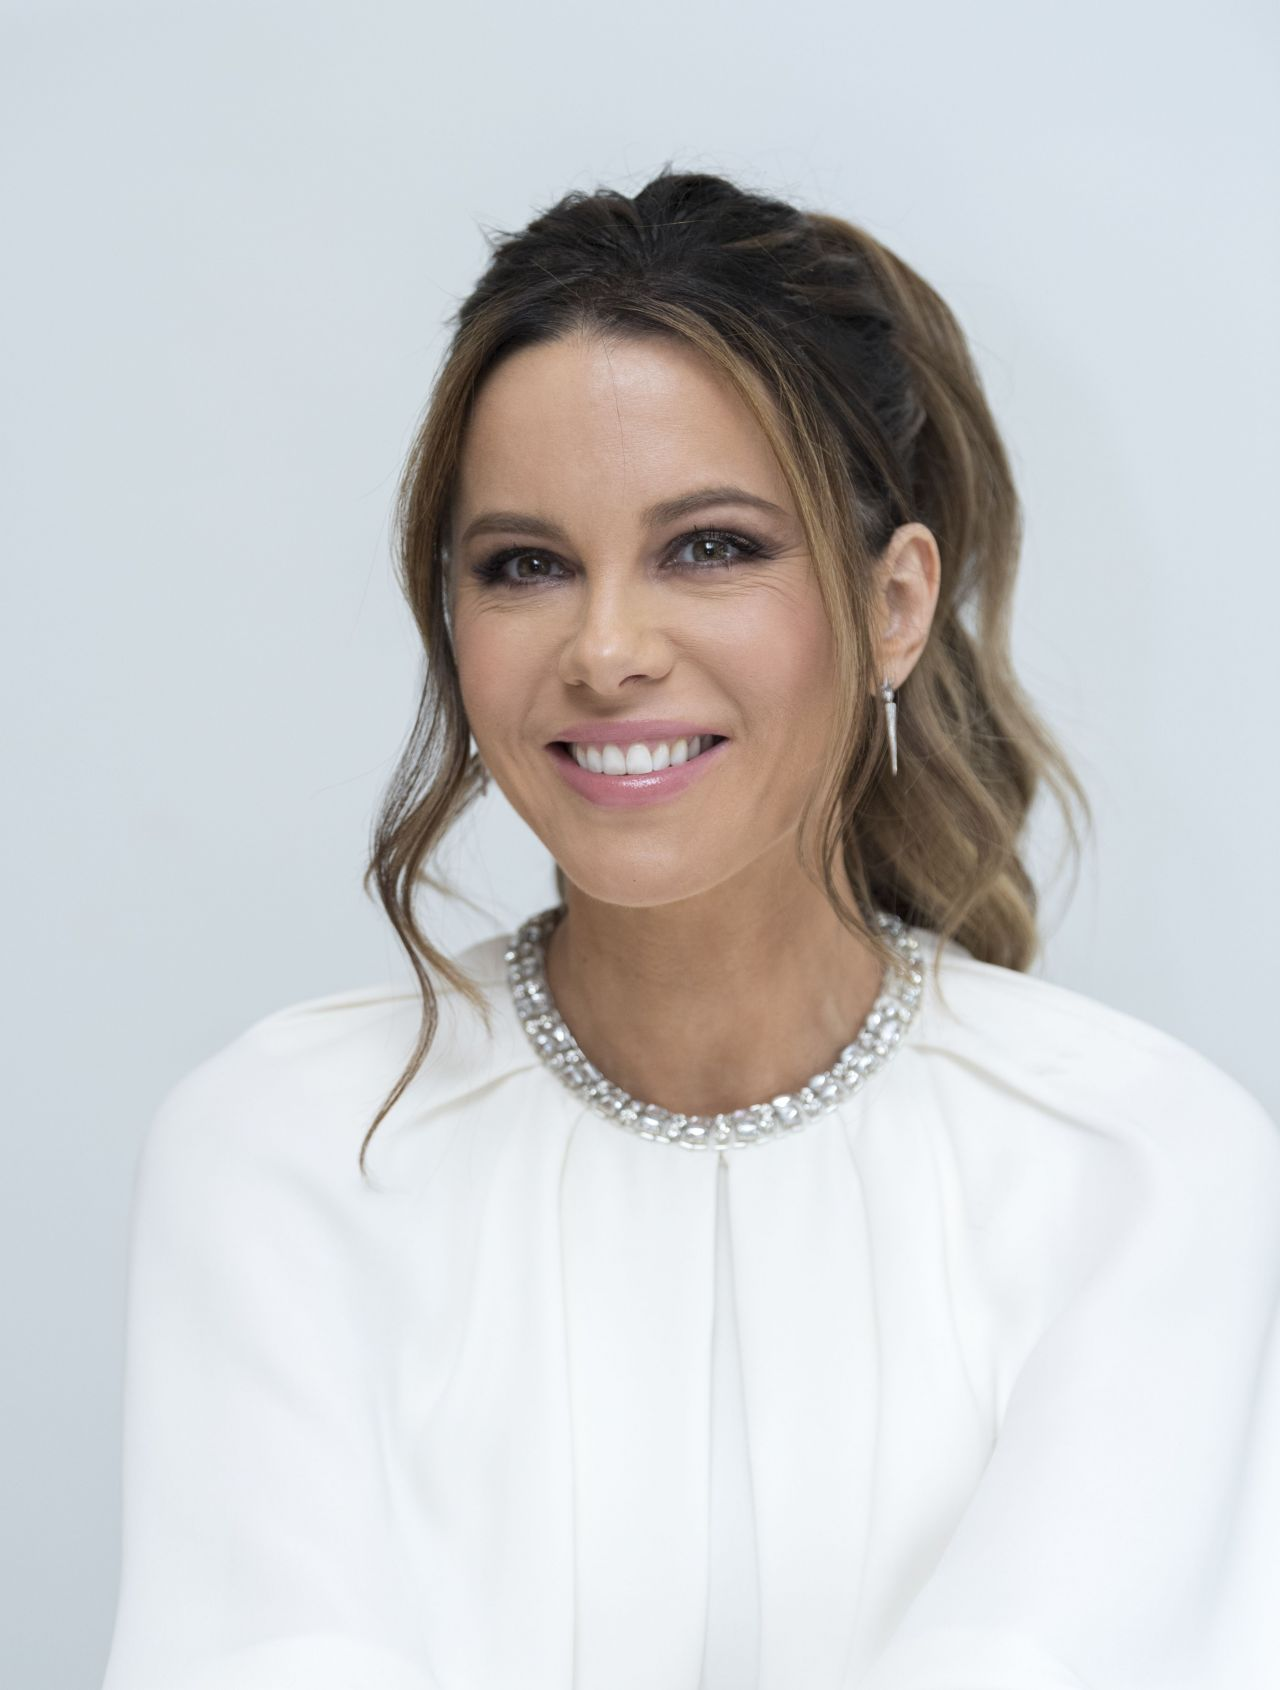 Kate Beckinsale photo #892299